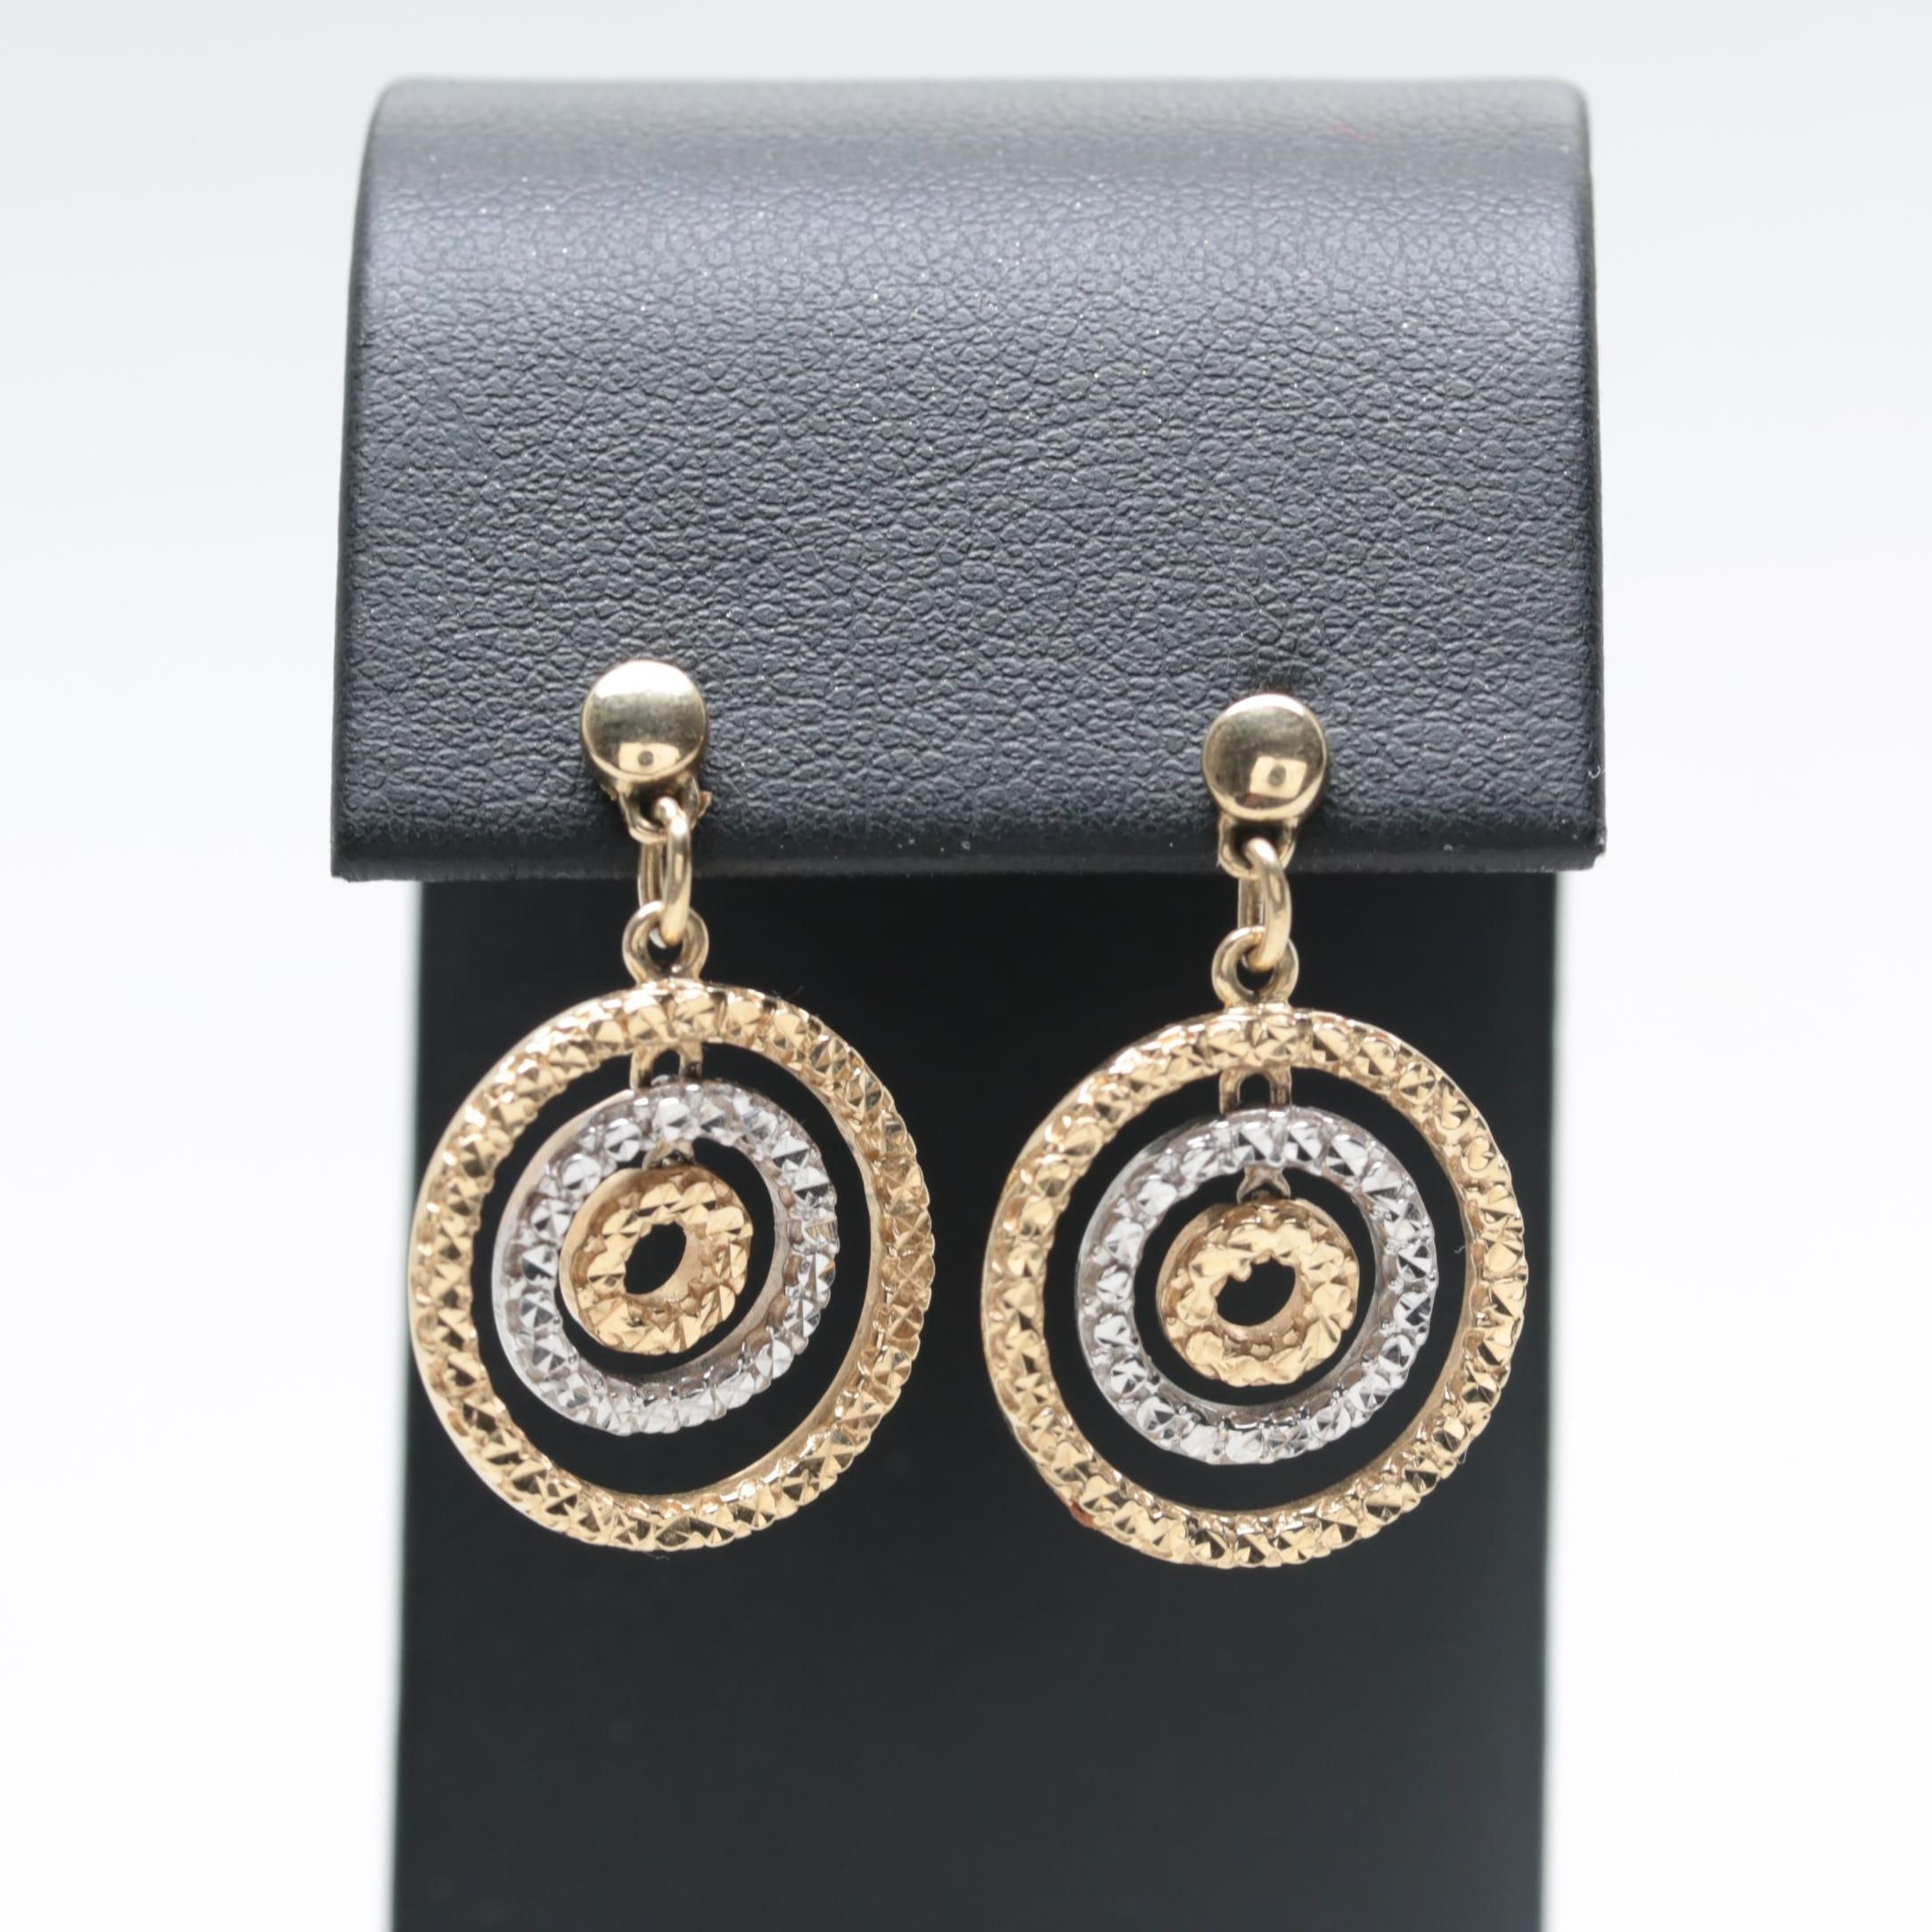 14K Yellow and White Gold Earrings